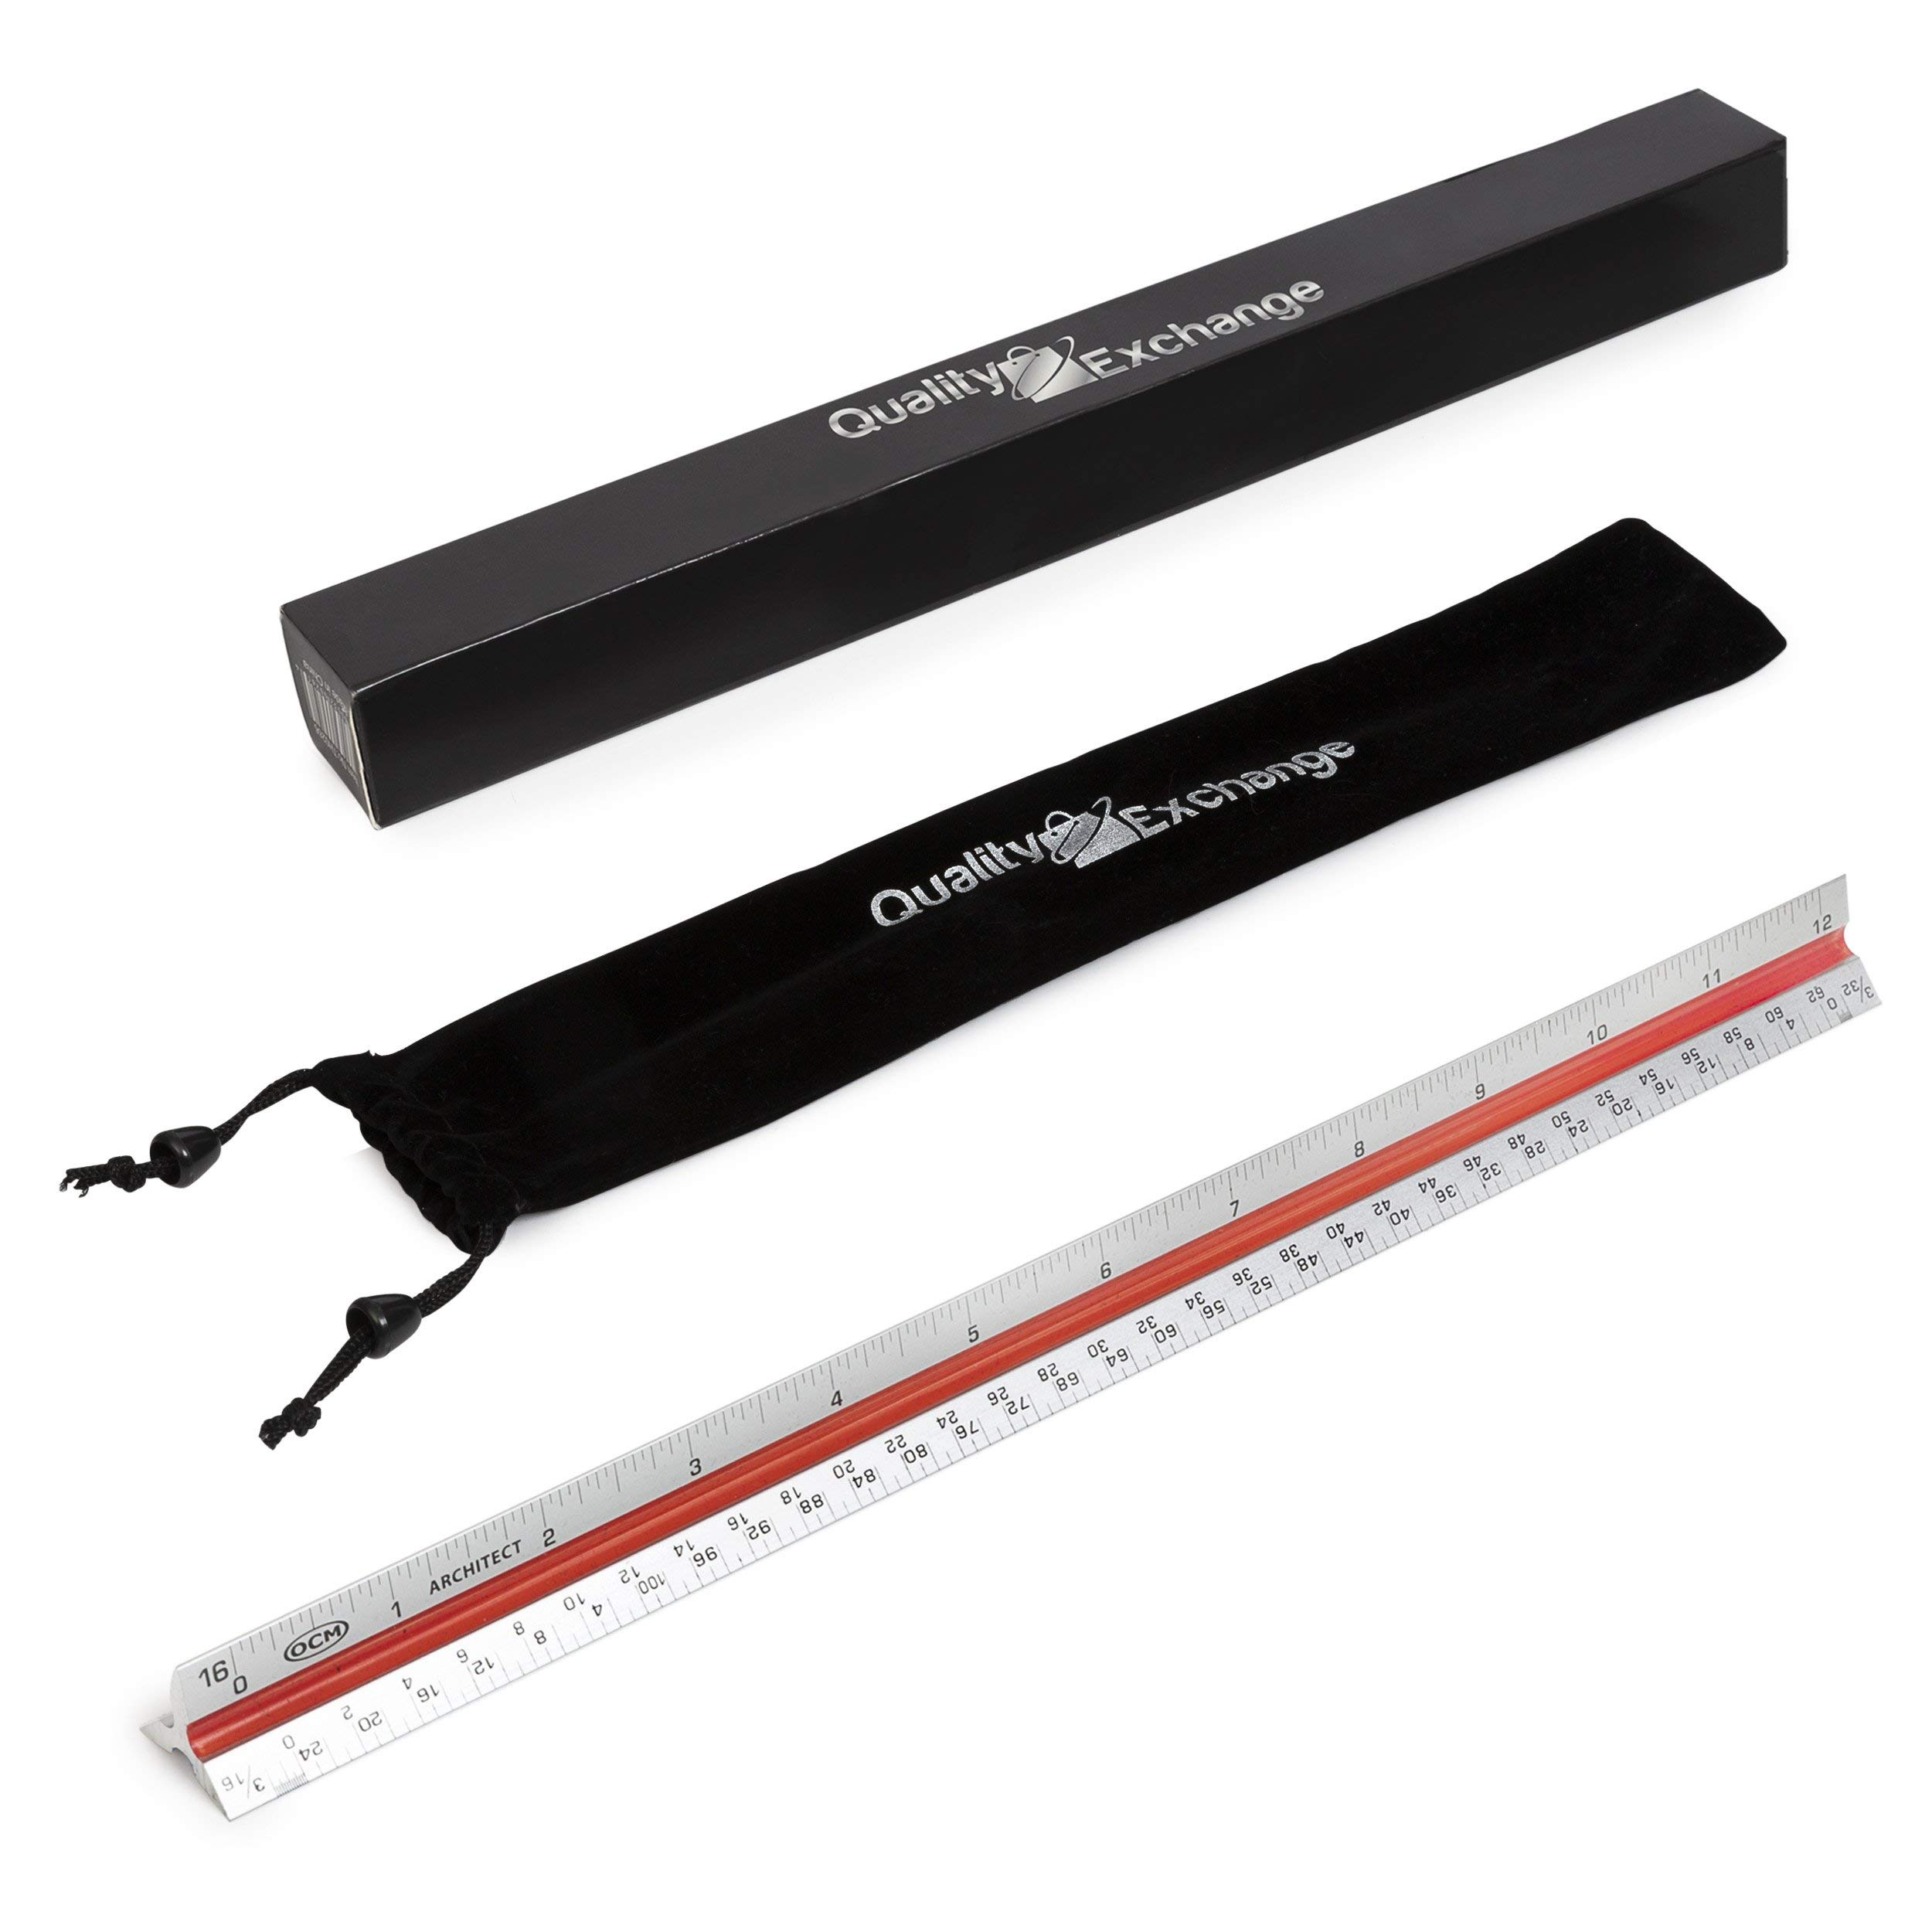 """Triangular Aluminum Architectural Scale Ruler   12"""" Triangular Architect Scale Metal Ruler Design   6 Scales on 3 Sides   Embossed Marks for Precision Measuring   Includes Carrying Bag"""